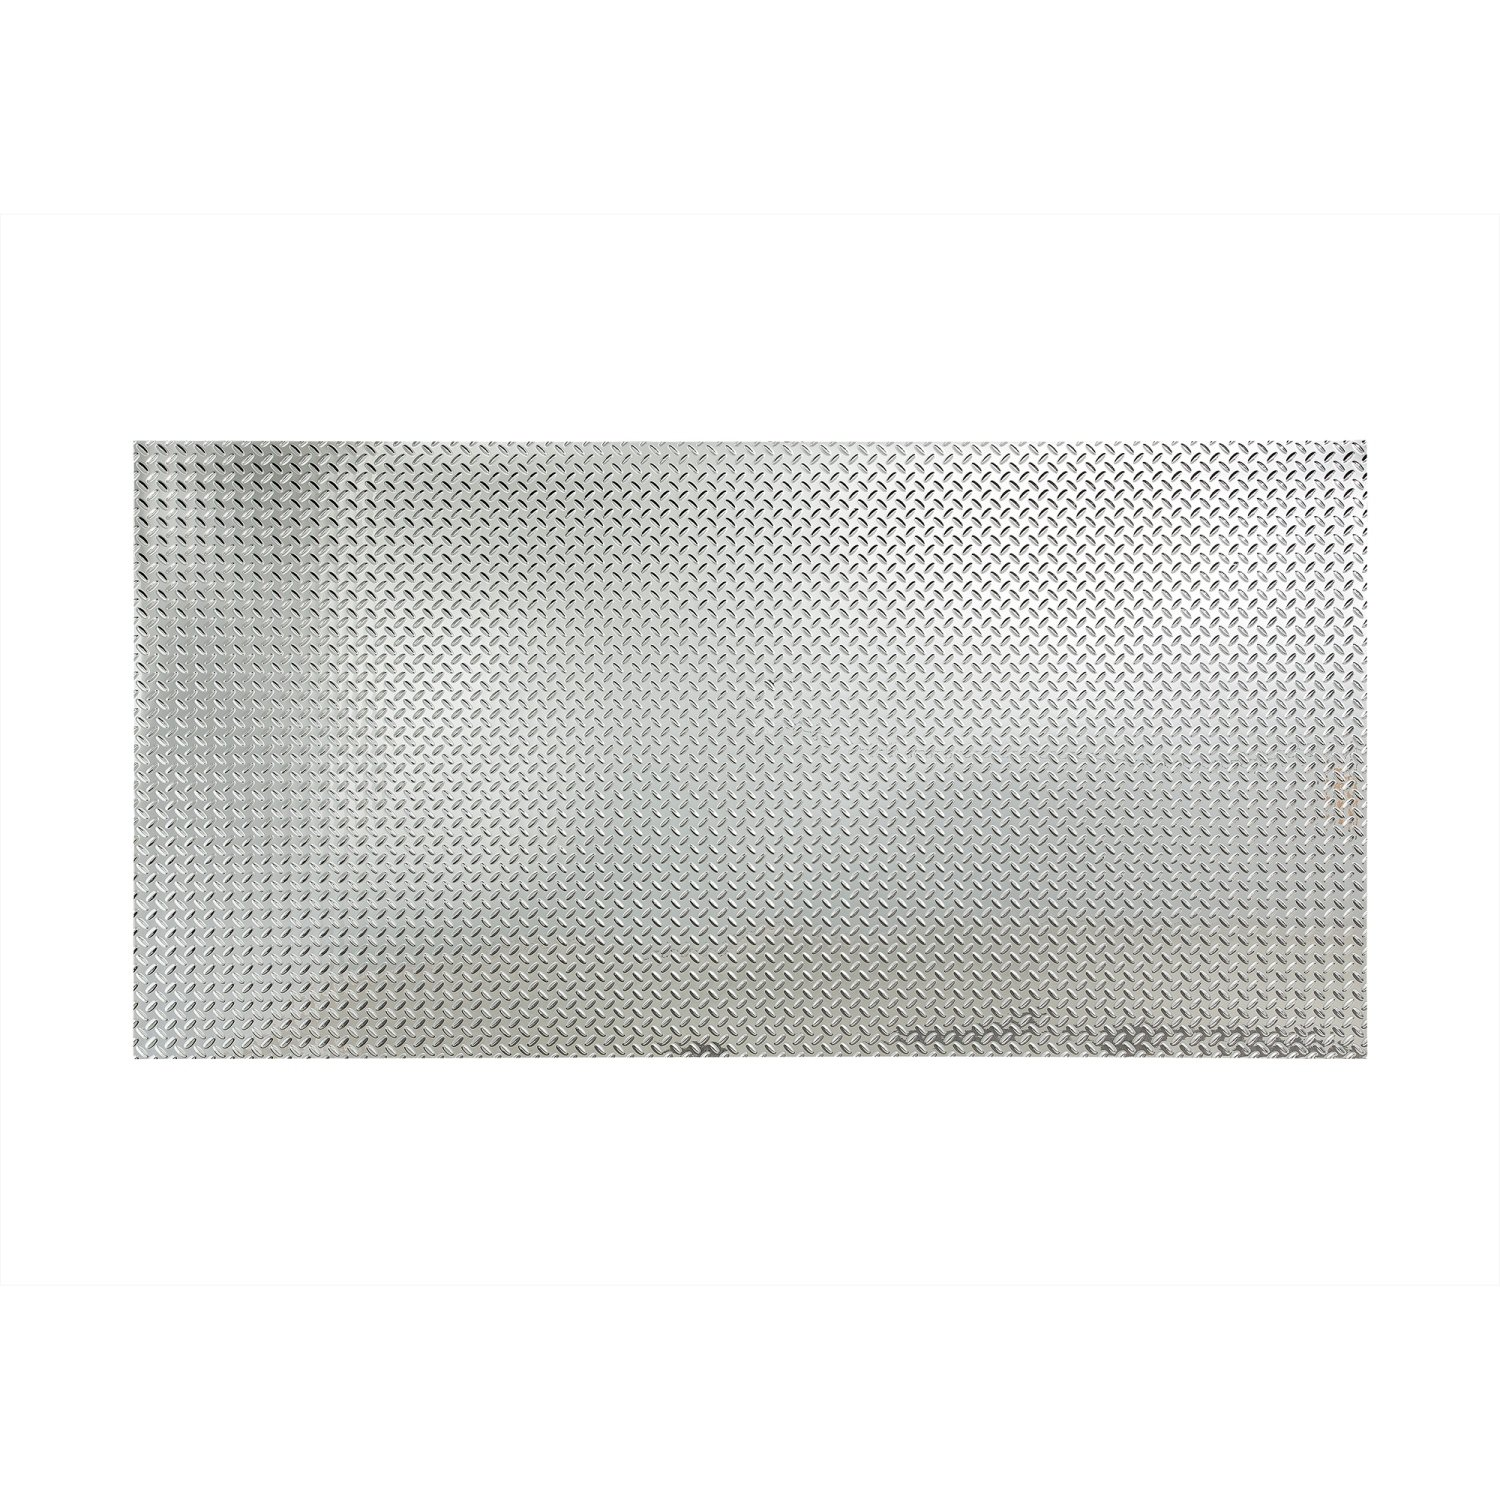 Fasade - Diamond Plate Chrome Decorative Wall Panel - Fast and Easy Installation (4' X 8' Panel)